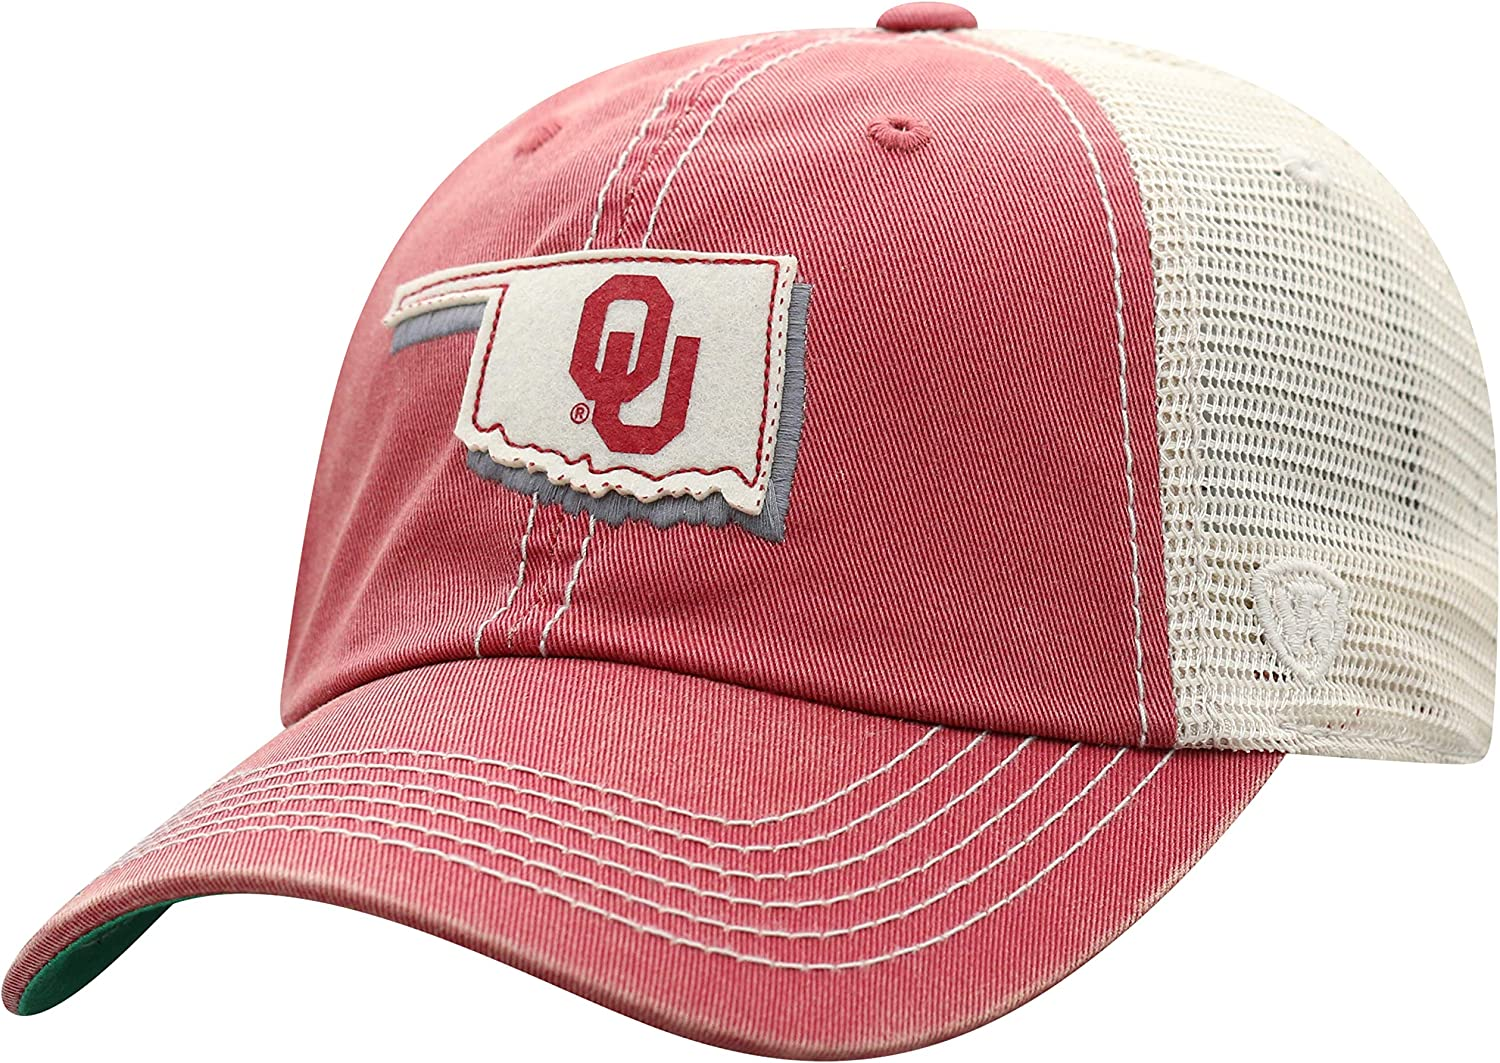 Top of the World NCAA Mens Hat Adjustable Off Road Mesh State Icon